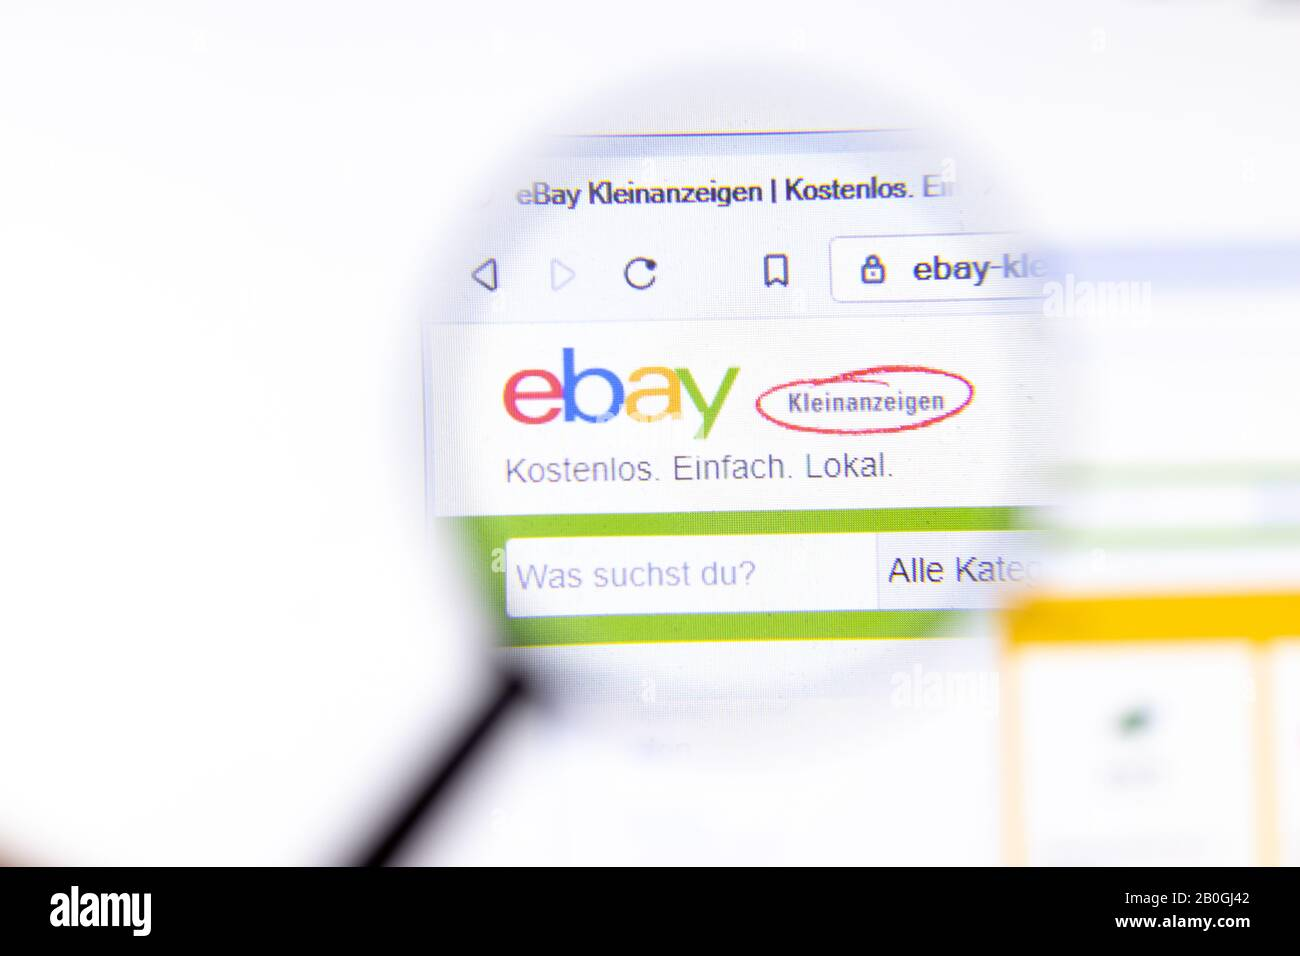 Ebay Logo Icon Brand High Resolution Stock Photography And Images Alamy